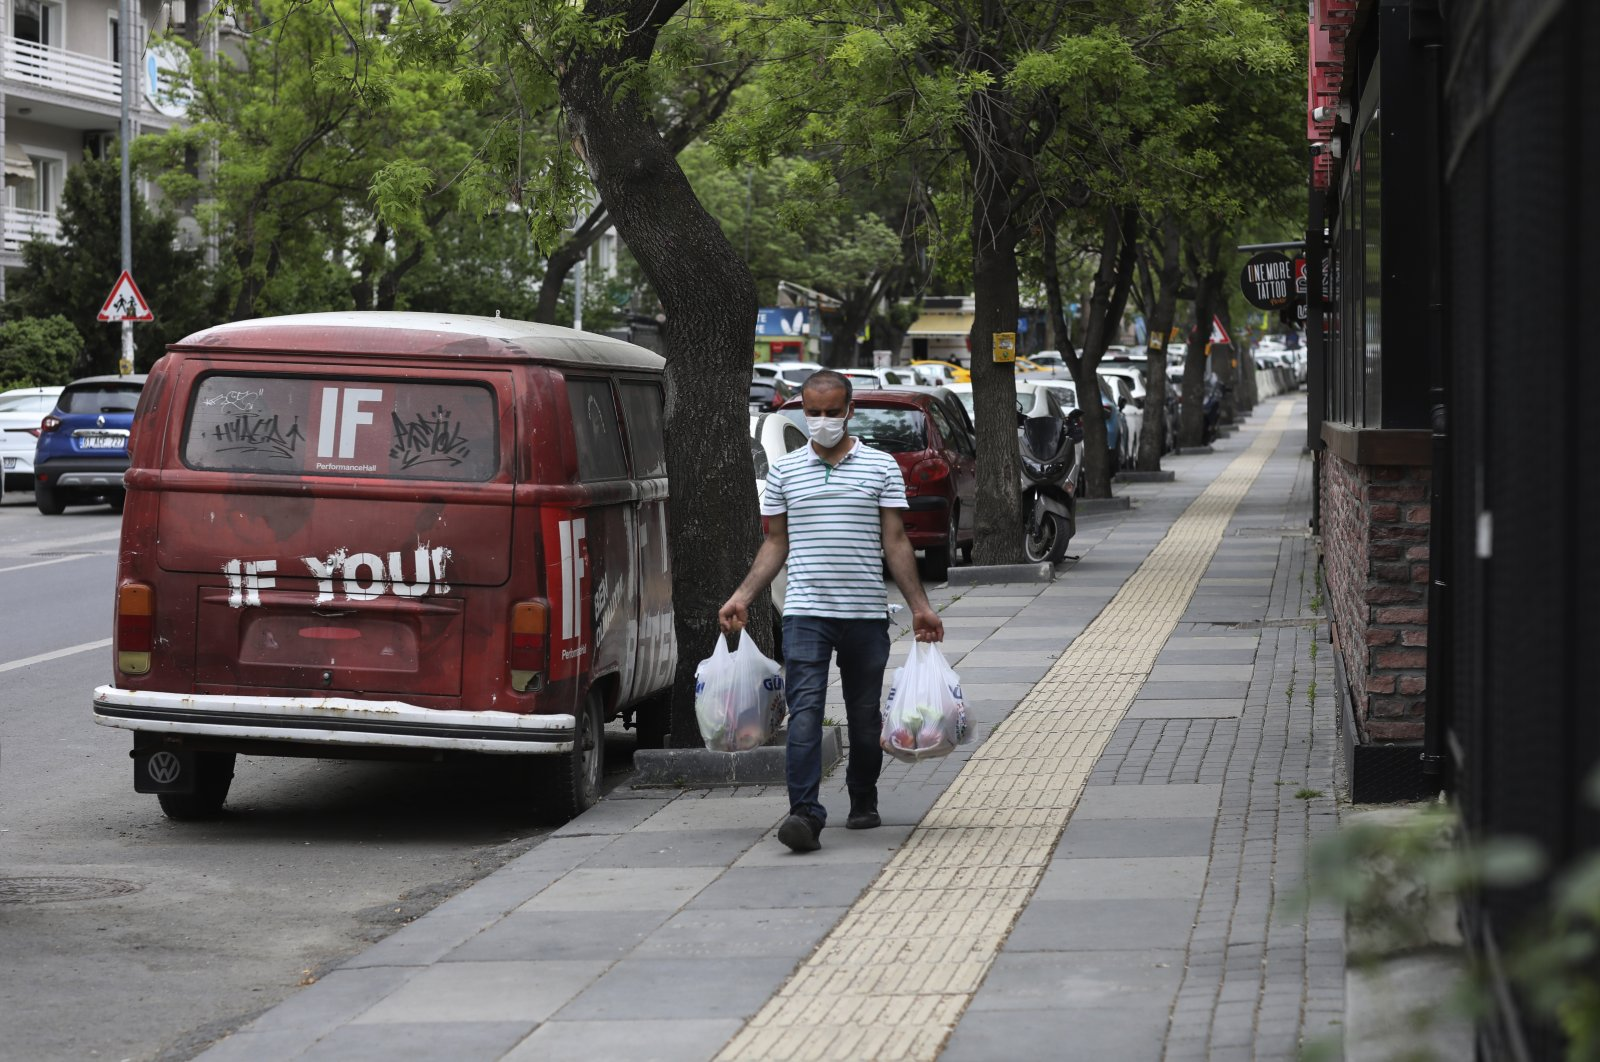 A man walks in a nearly deserted street during the lockdown in the capital, Ankara, Turkey, May 6, 2021. (AP PHOTO)